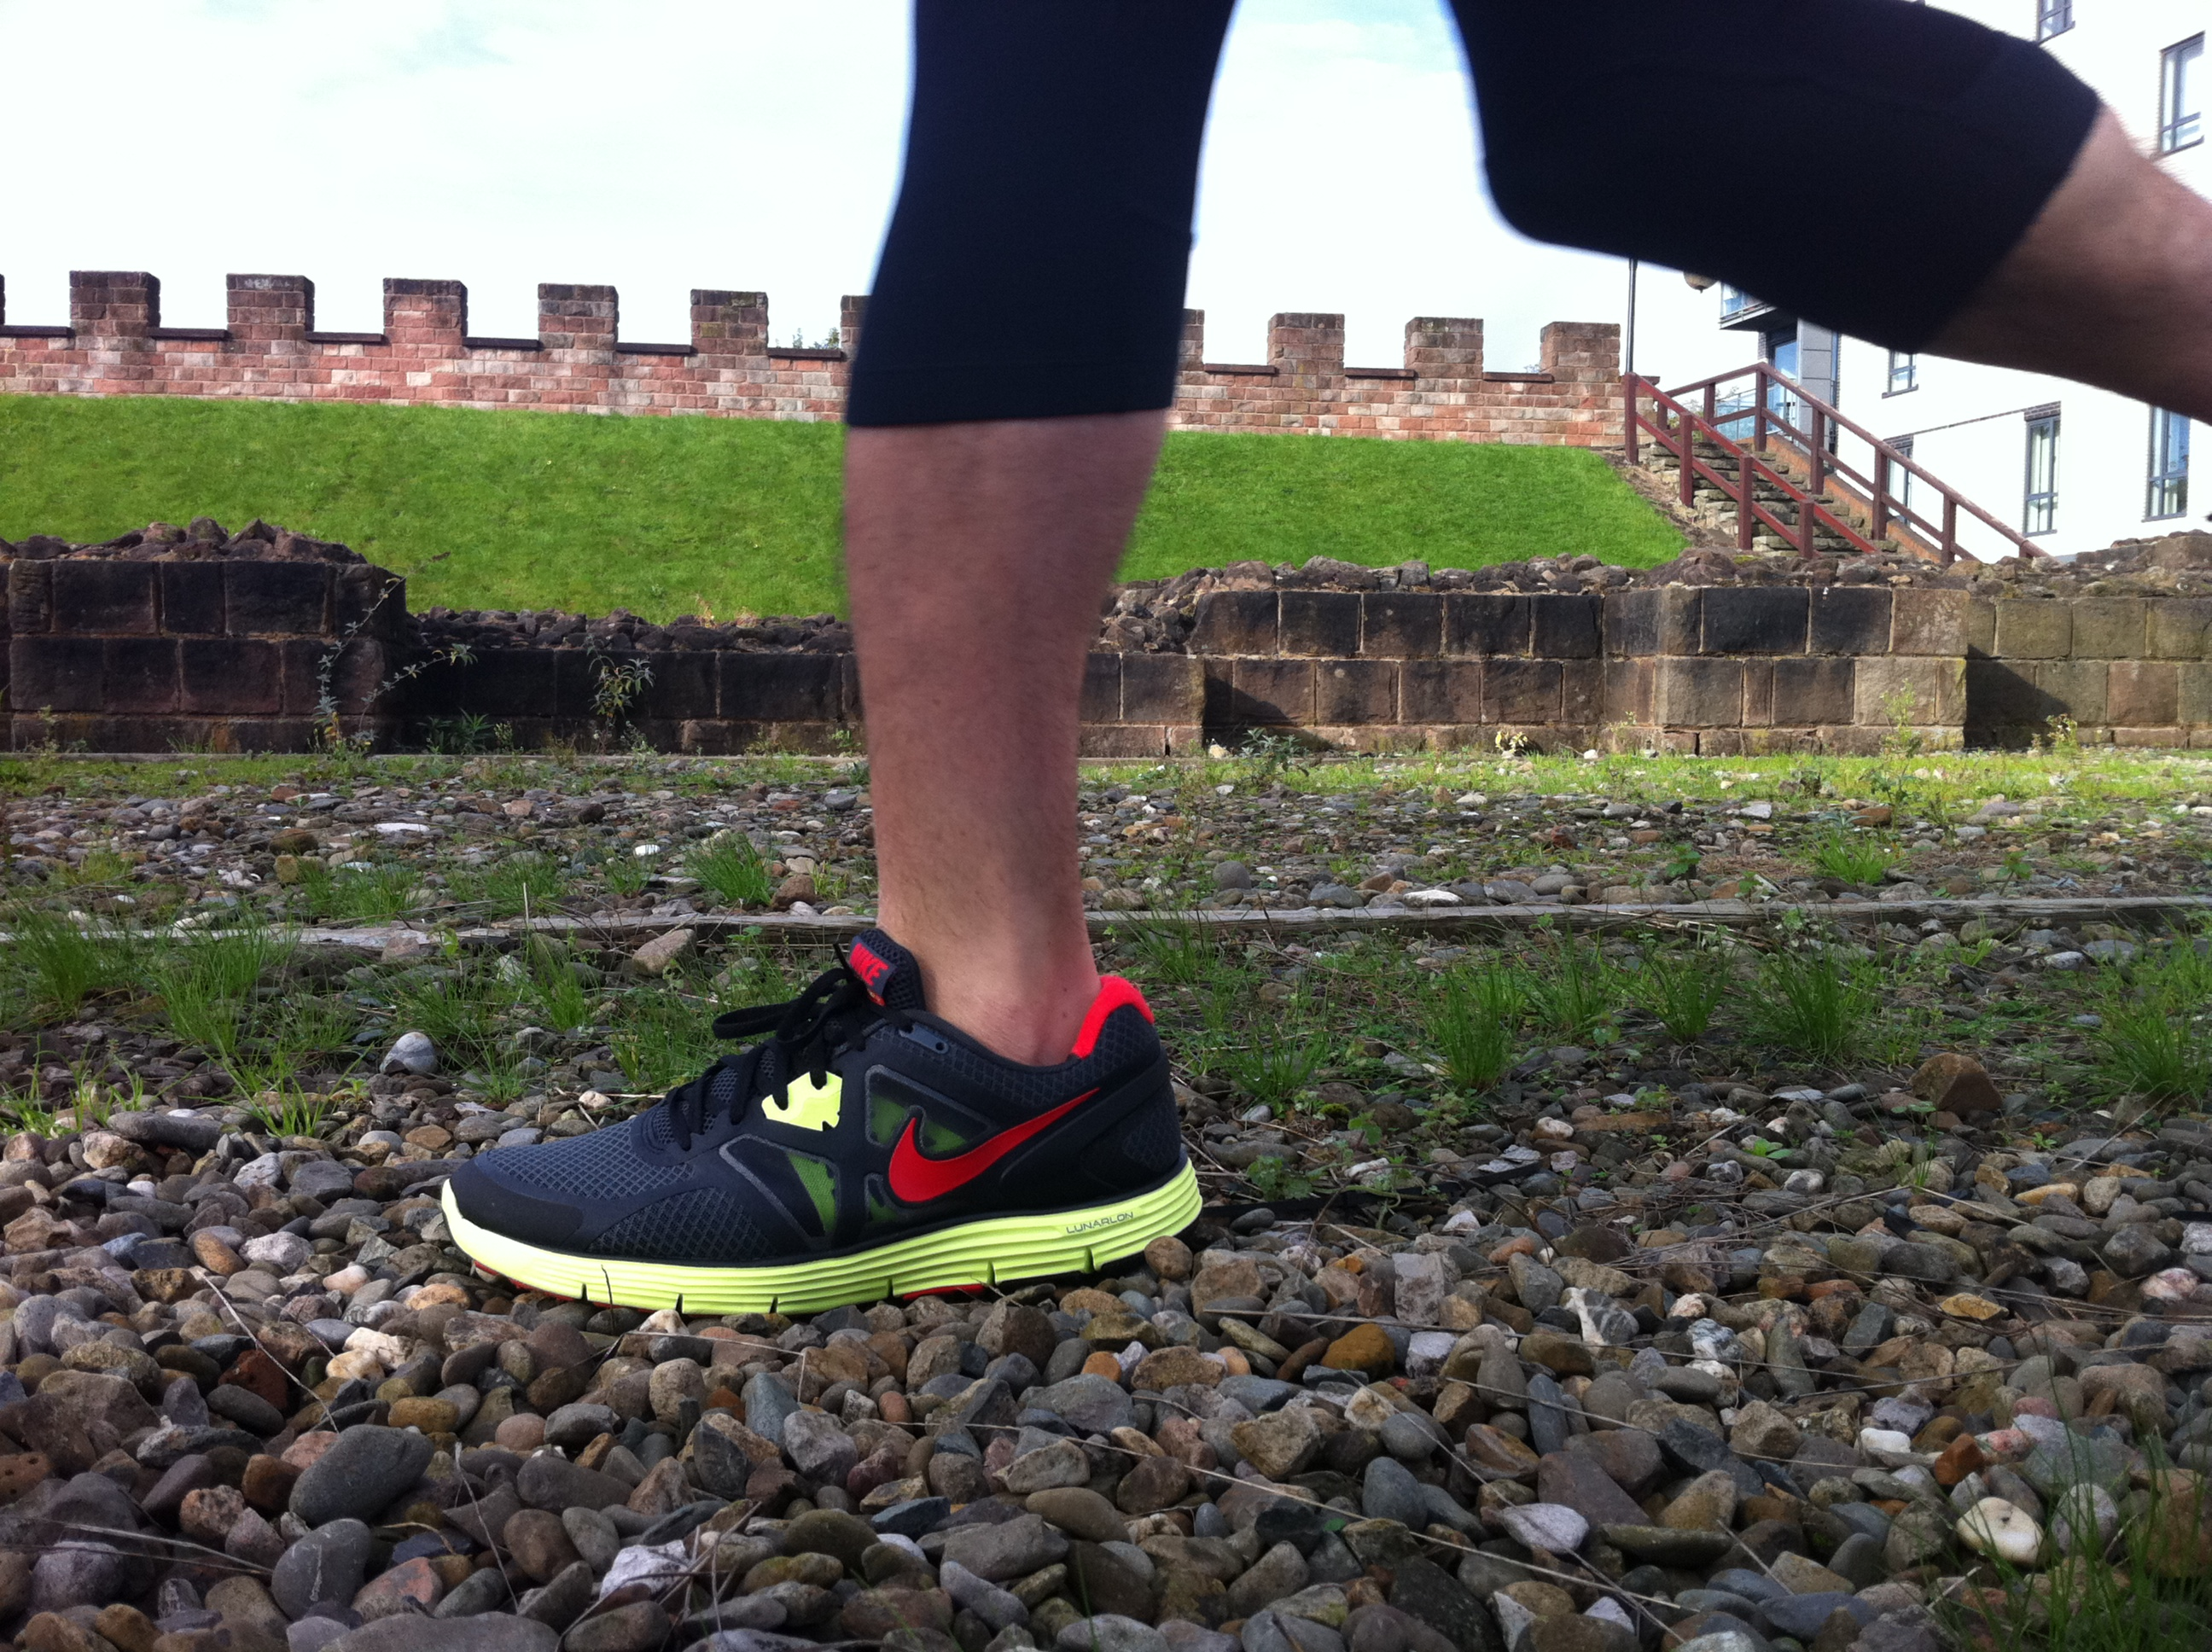 182846166450cb nike lunarglide 5 review